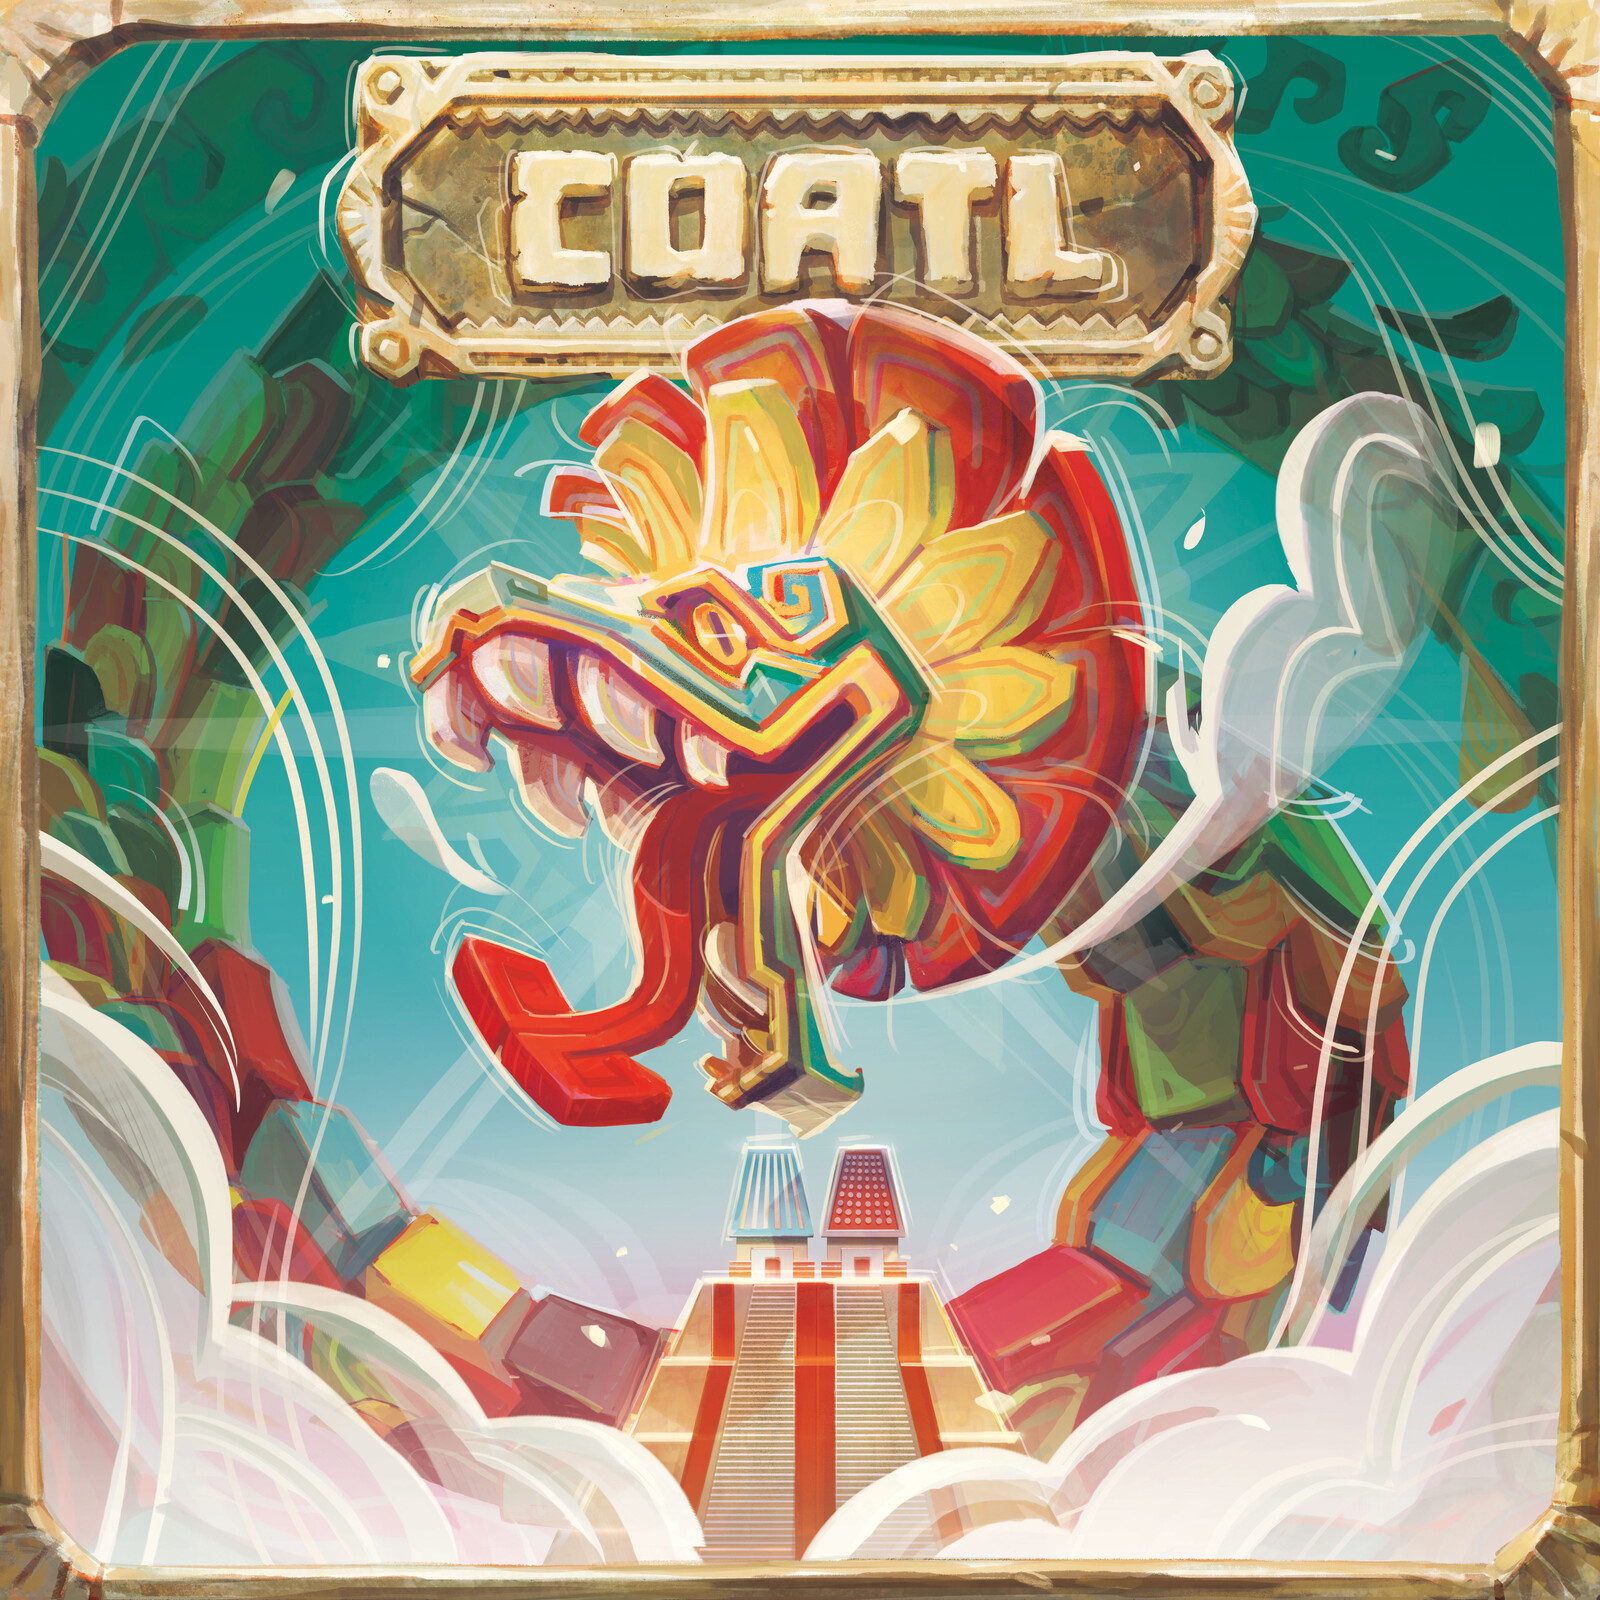 Box cover art, featuring the feathered serpent, or Coatl striding majestically over the city of Tenochtitlan.